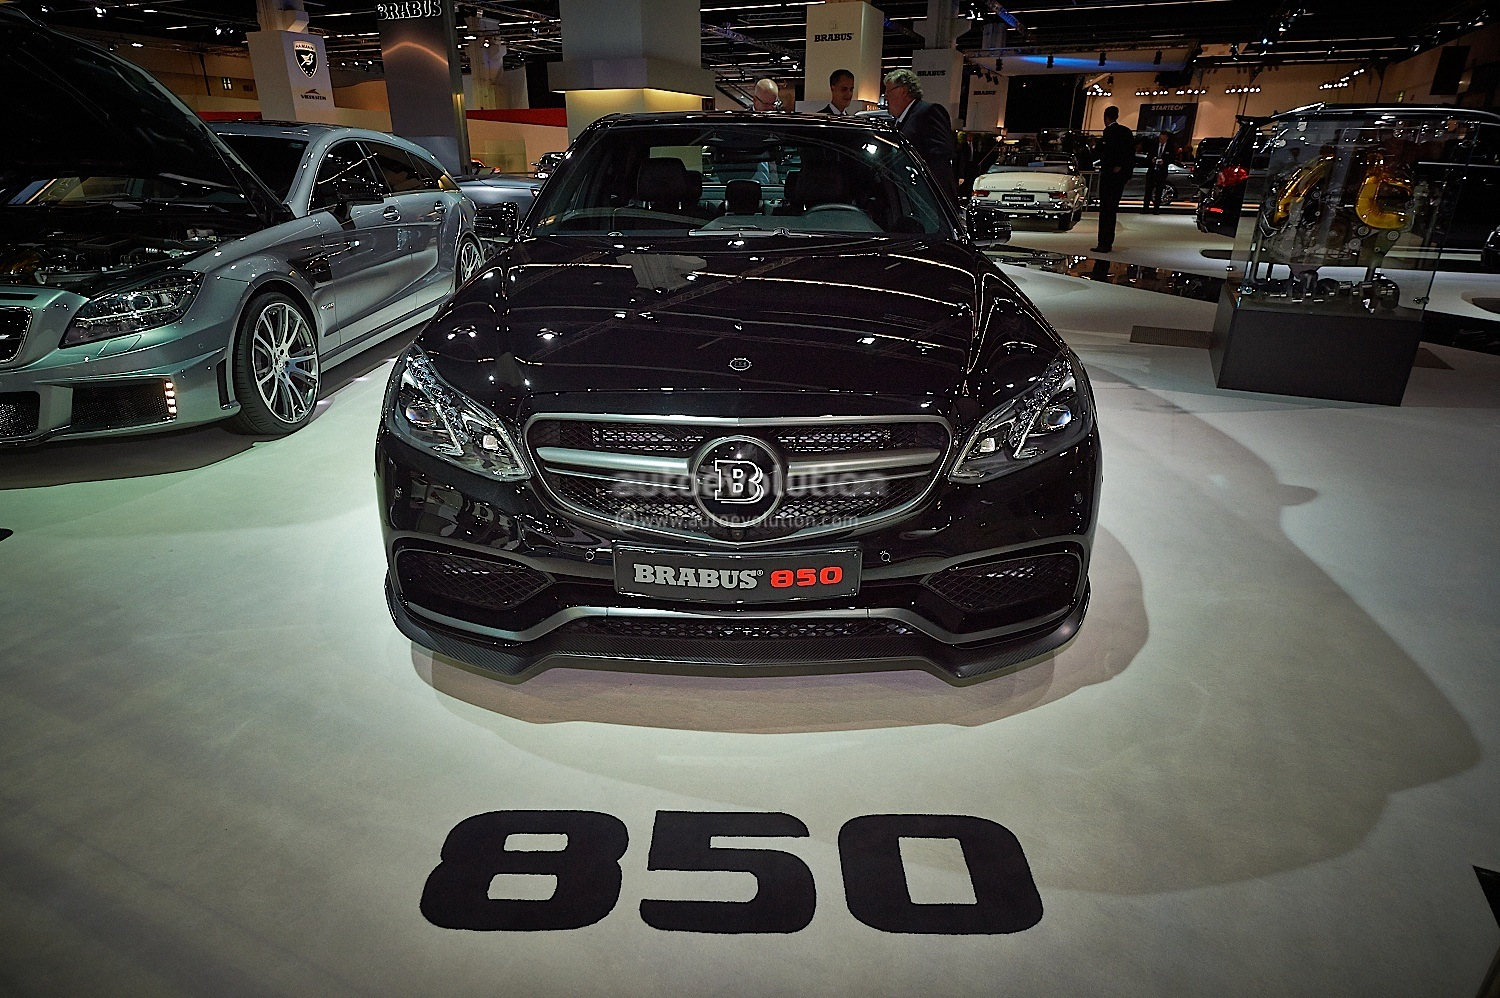 850 Hp Brabus E Class Wants You To Join The Dark Side